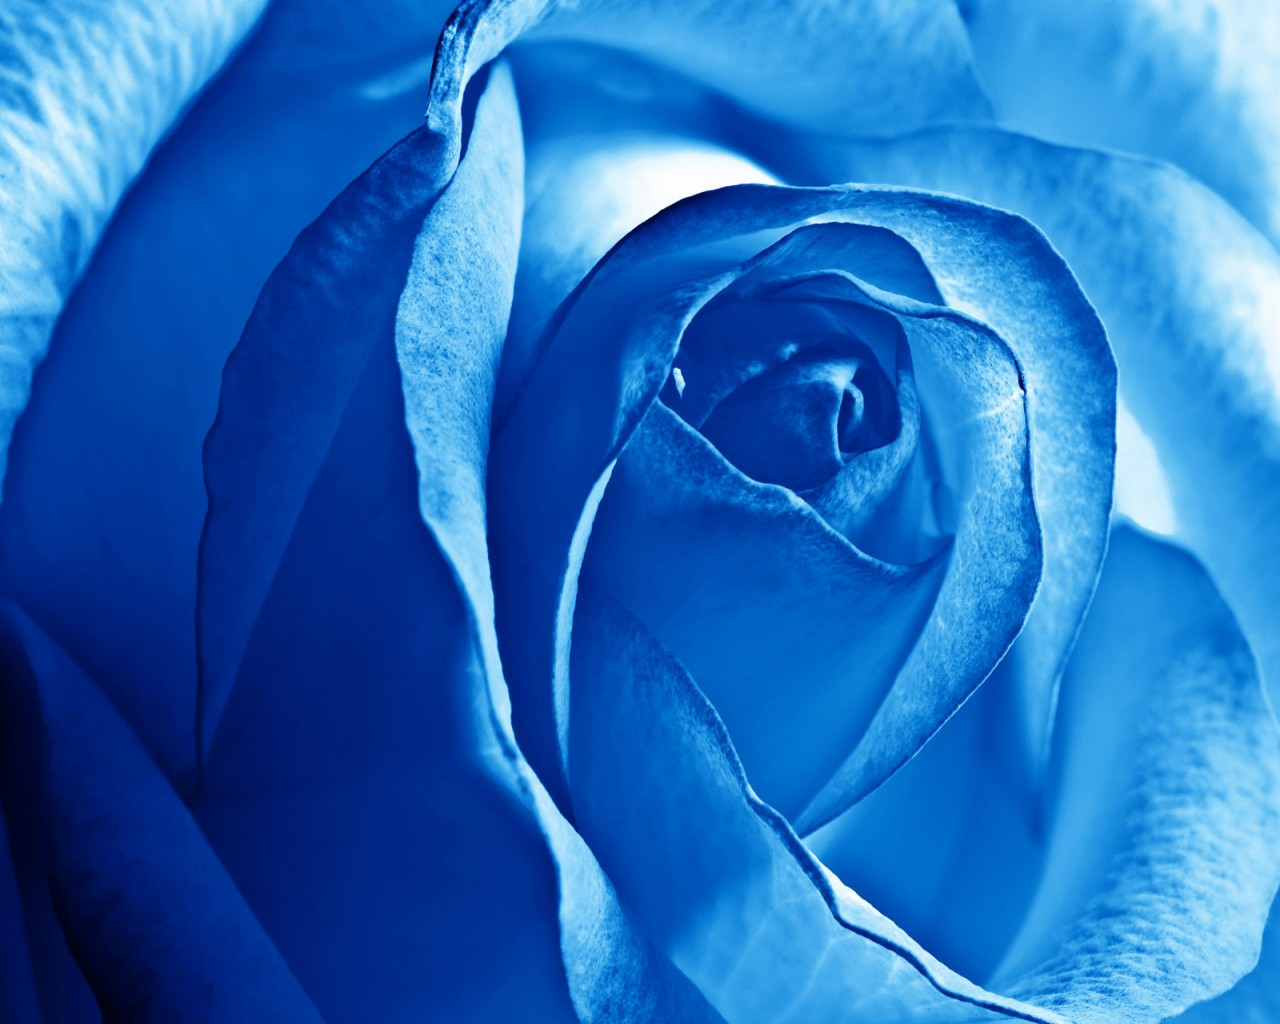 3d Cute Wallpaper Free Download Blue Rose Wallpapers Hd Wallpapers Id 11663